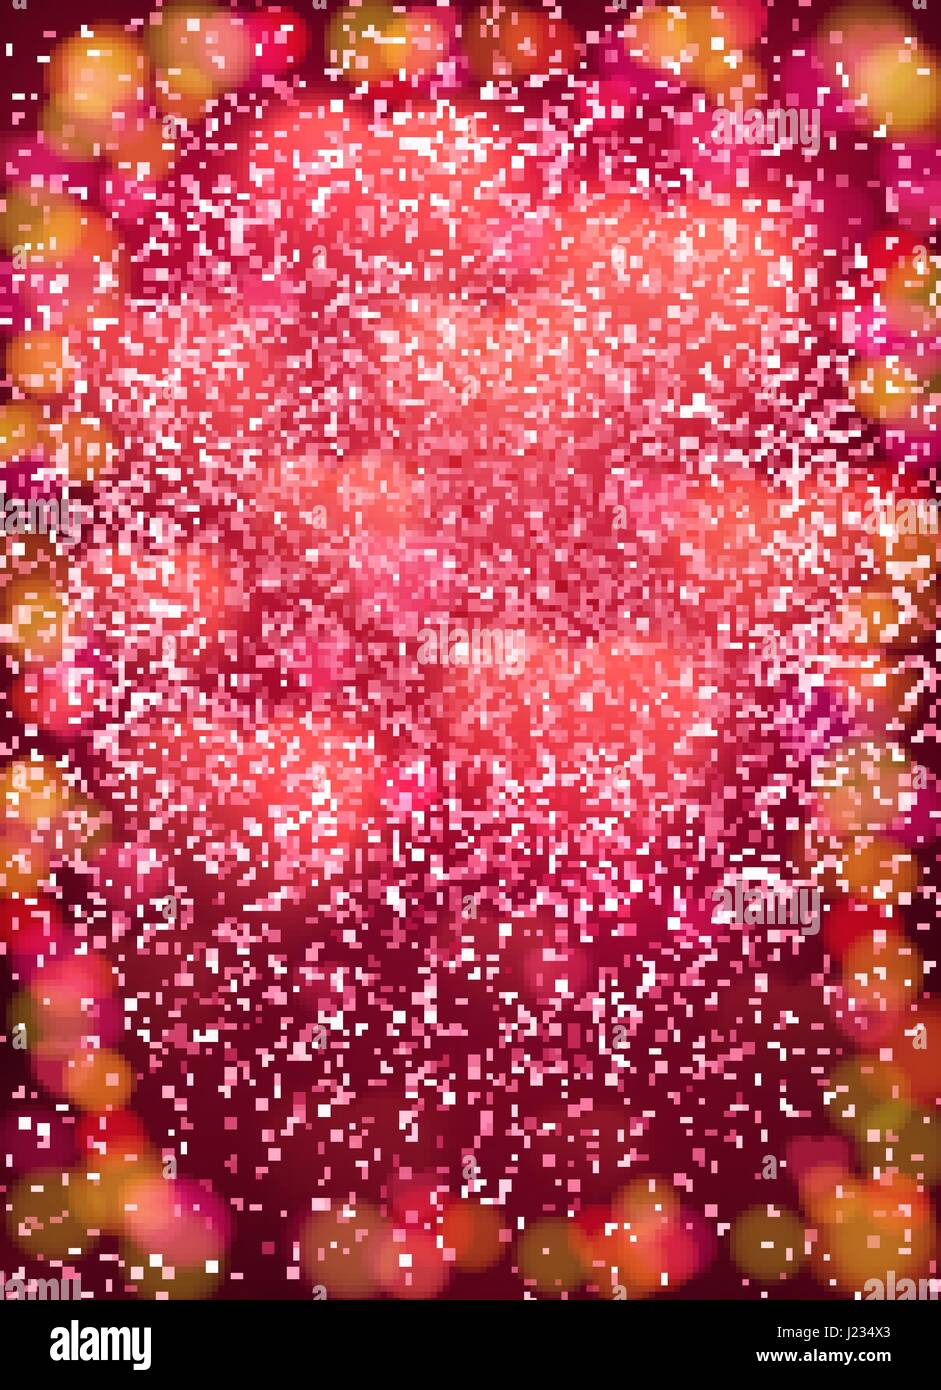 Heart Background With Cloud Of Glowing Blurred Soft Hearts Glitter